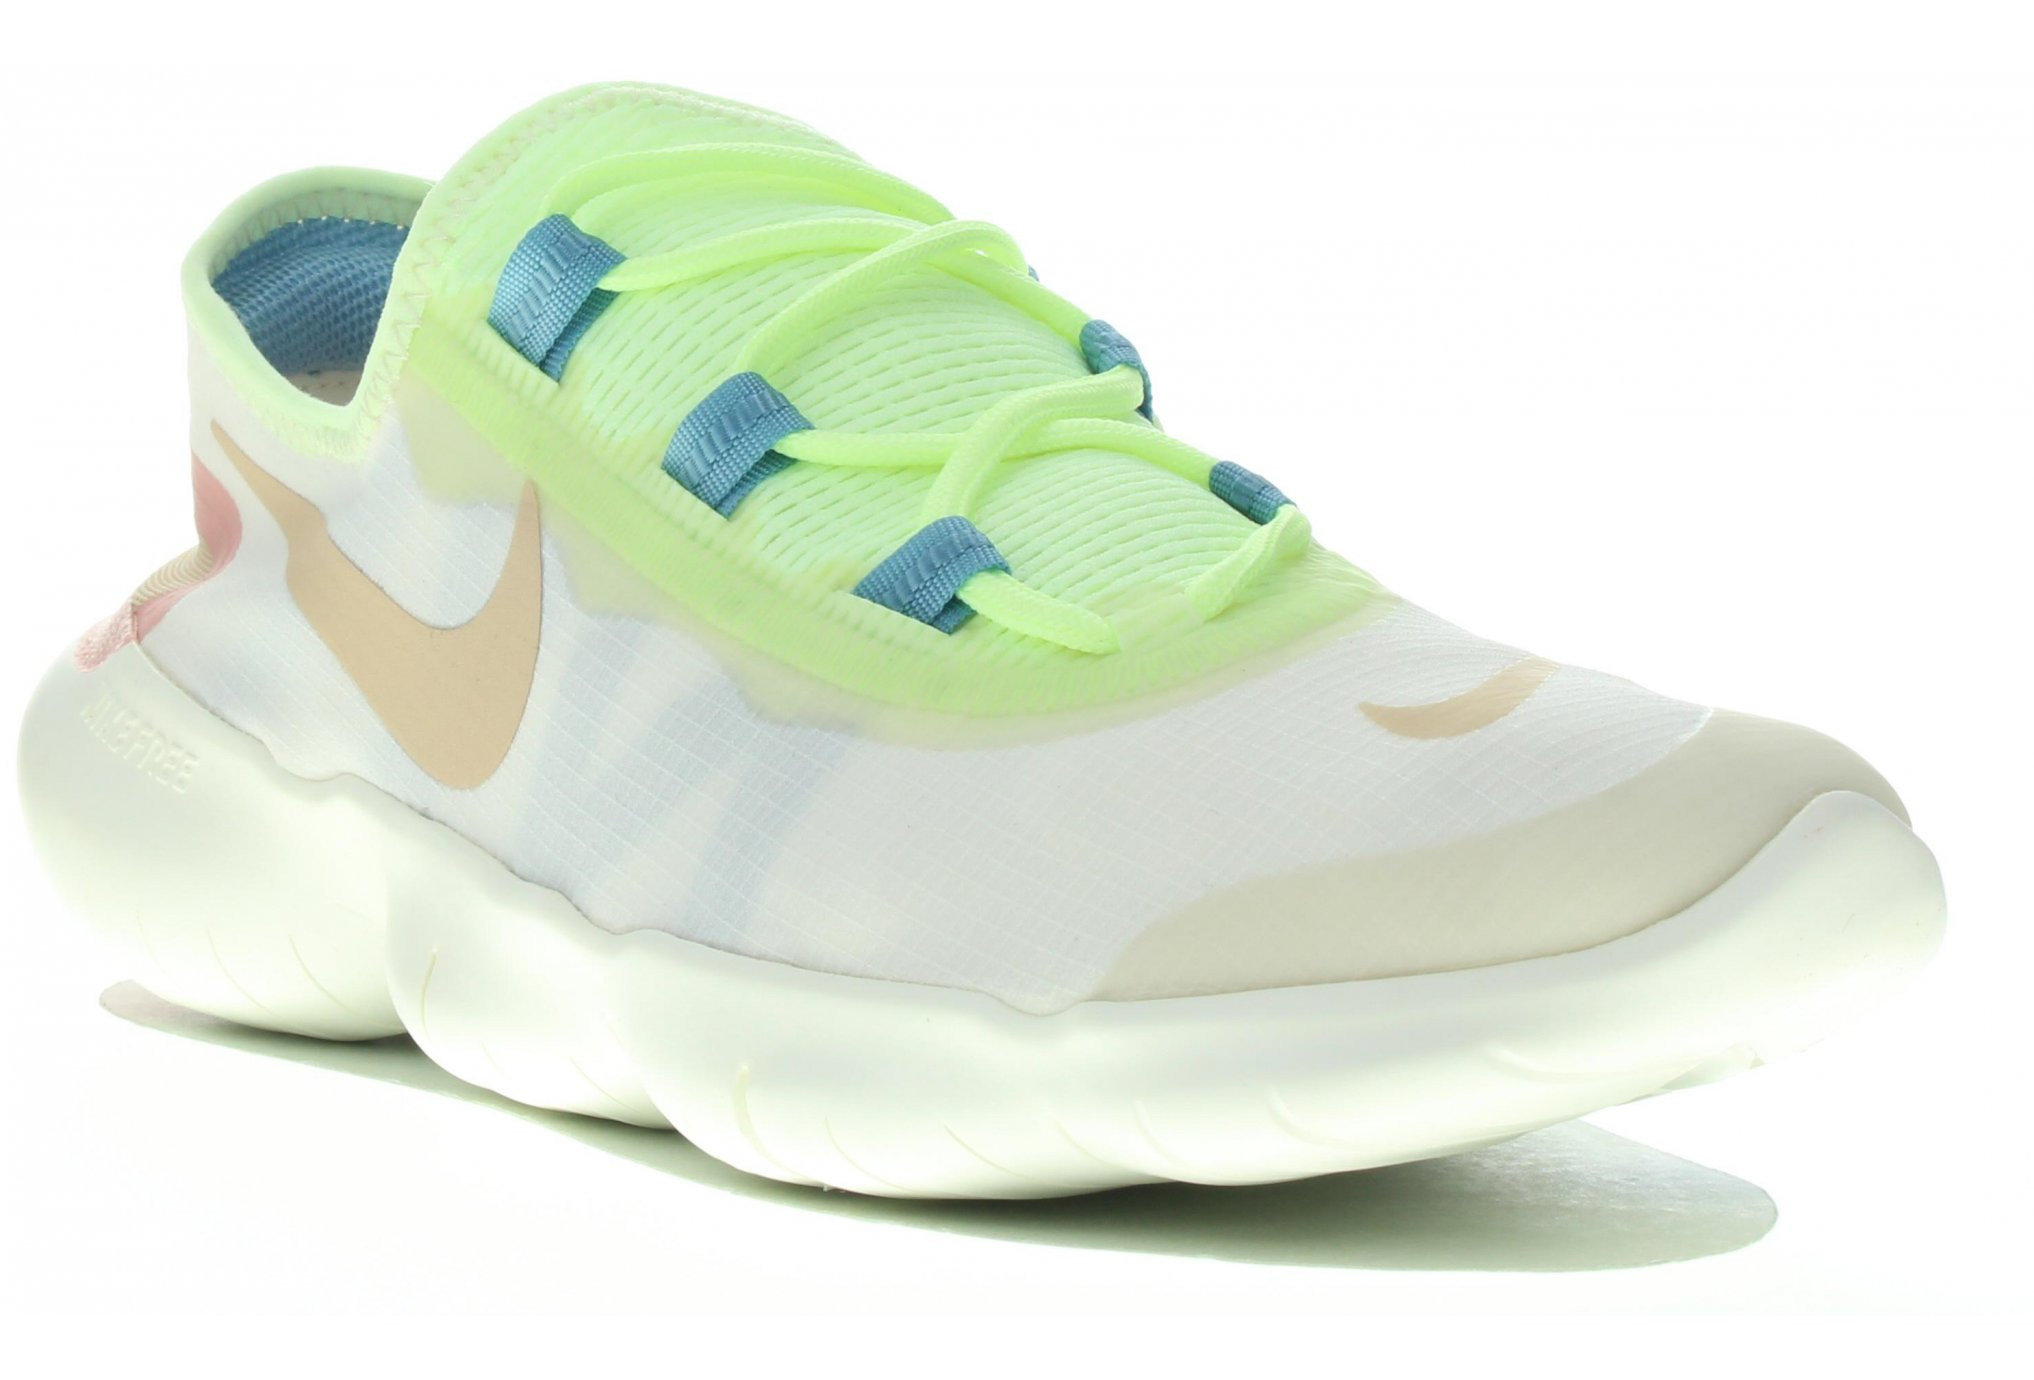 Nike Free RN 5.0 2020 Chaussures running femme